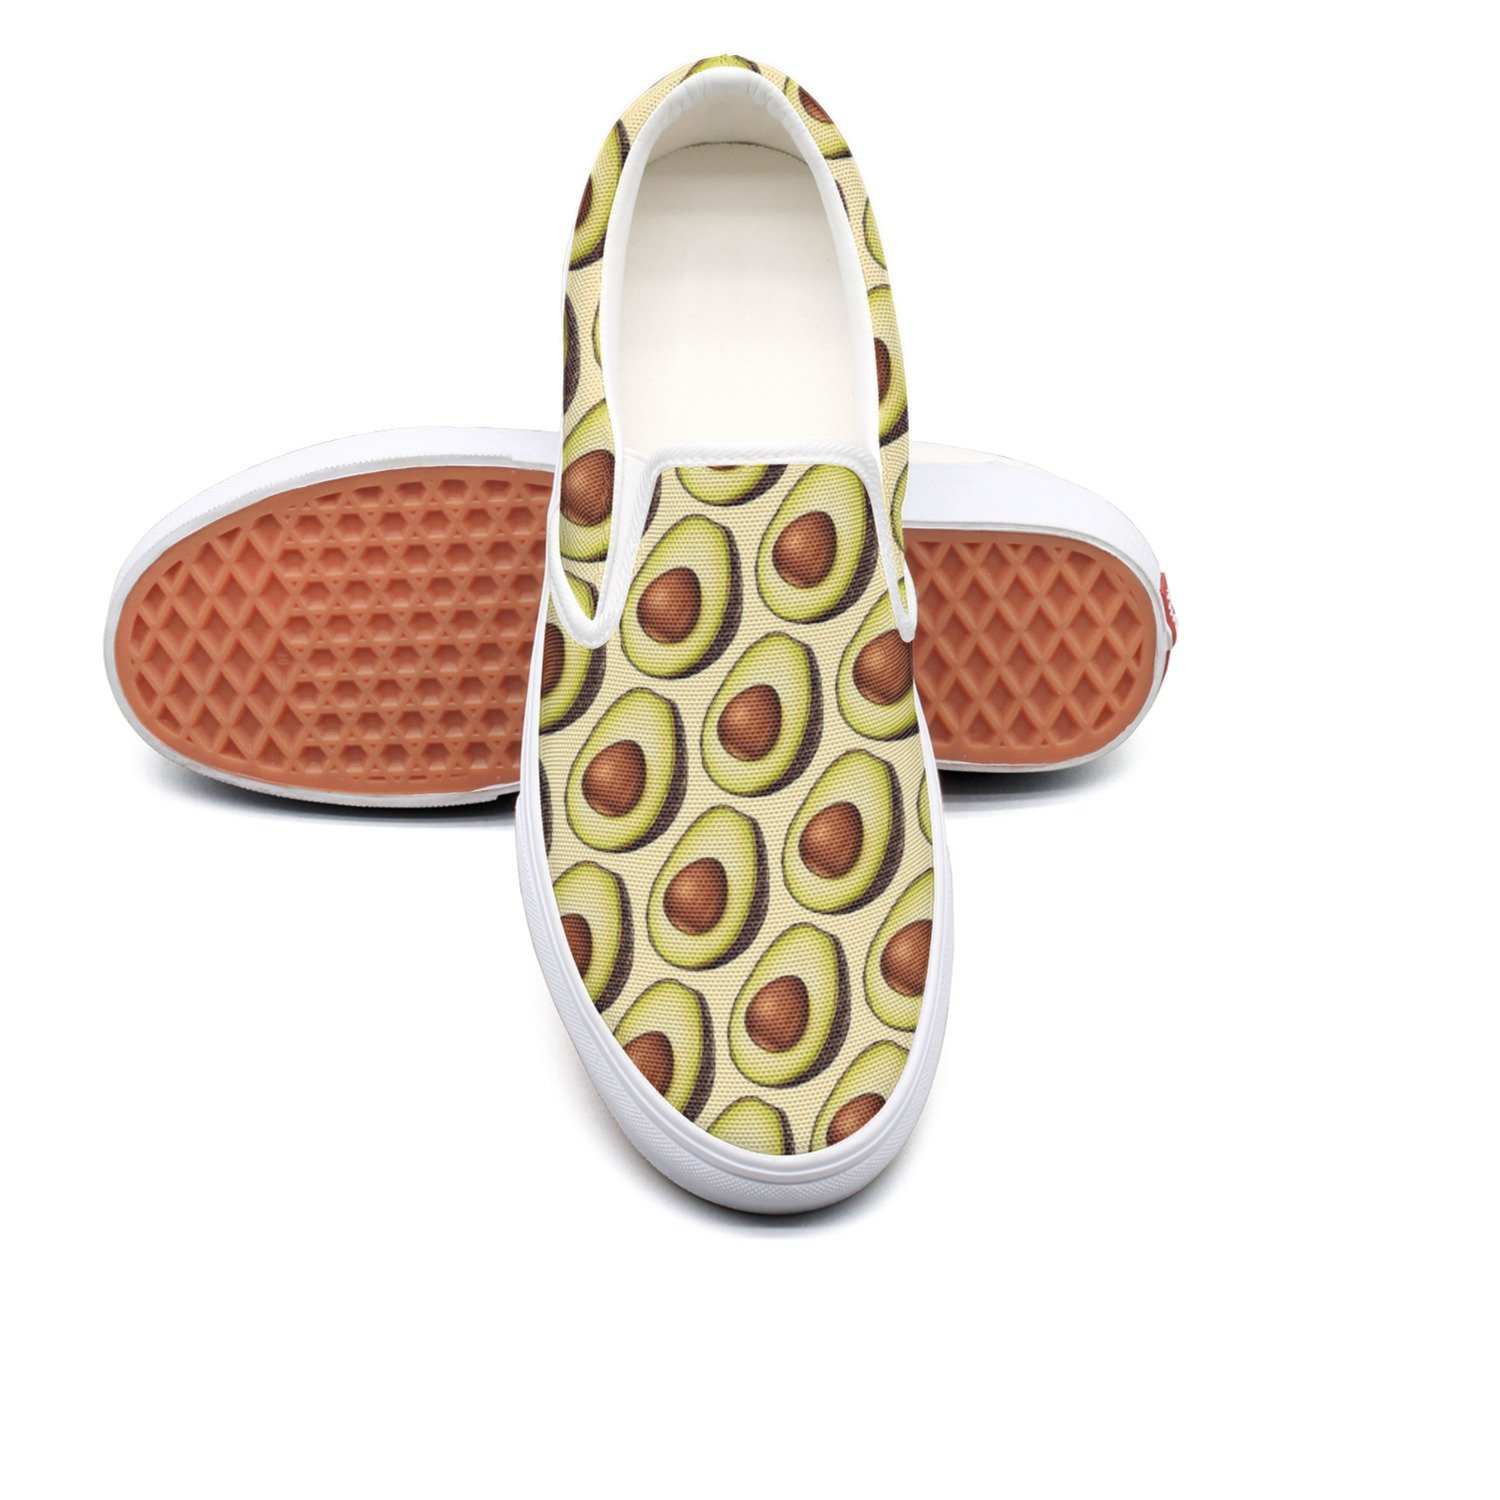 seventtynine Love Avocados Classic Men's Canvas Slip-Ons Loafer Shoes Sneaker